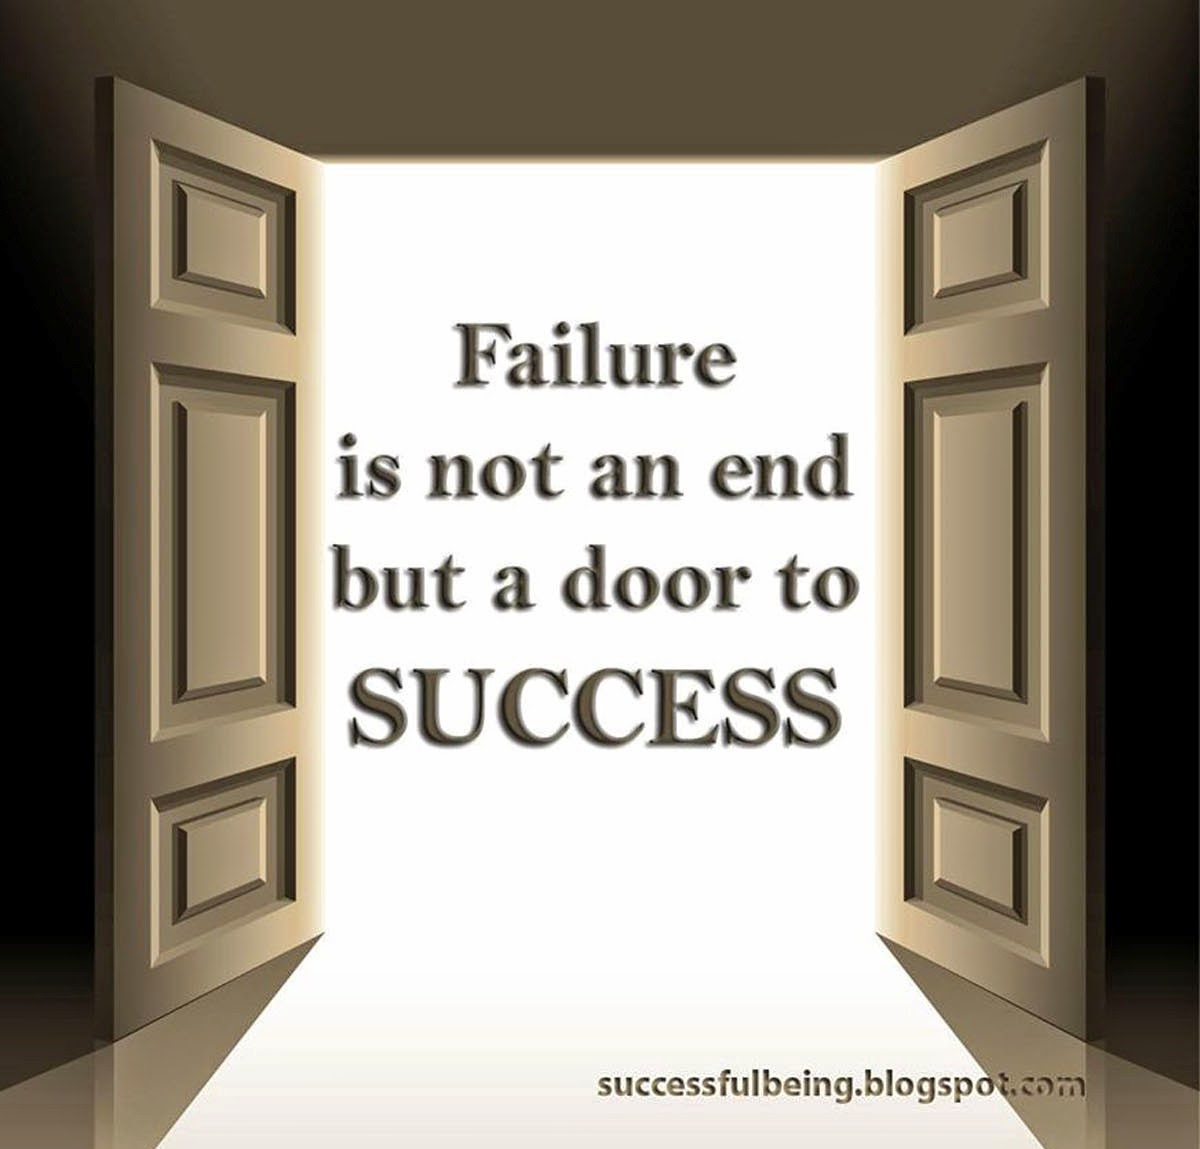 Failure is not an end but a door to Success.